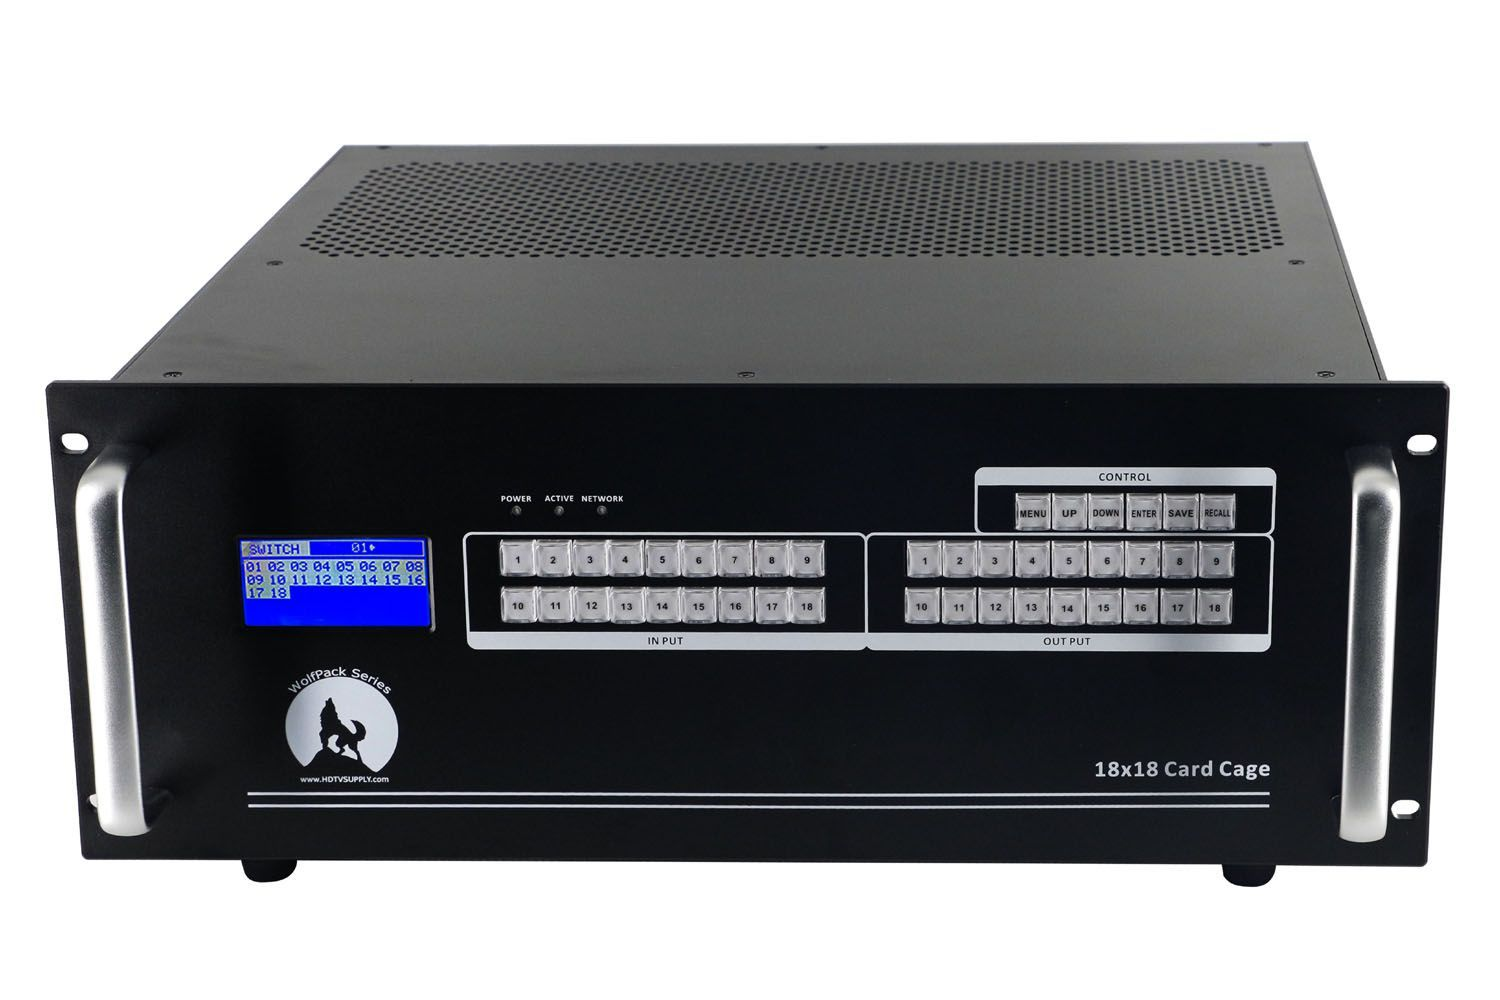 Fast 12x7 HDMI Matrix Switch w/Apps, WEB GUI, Video Wall, Separate Audio & Scaling